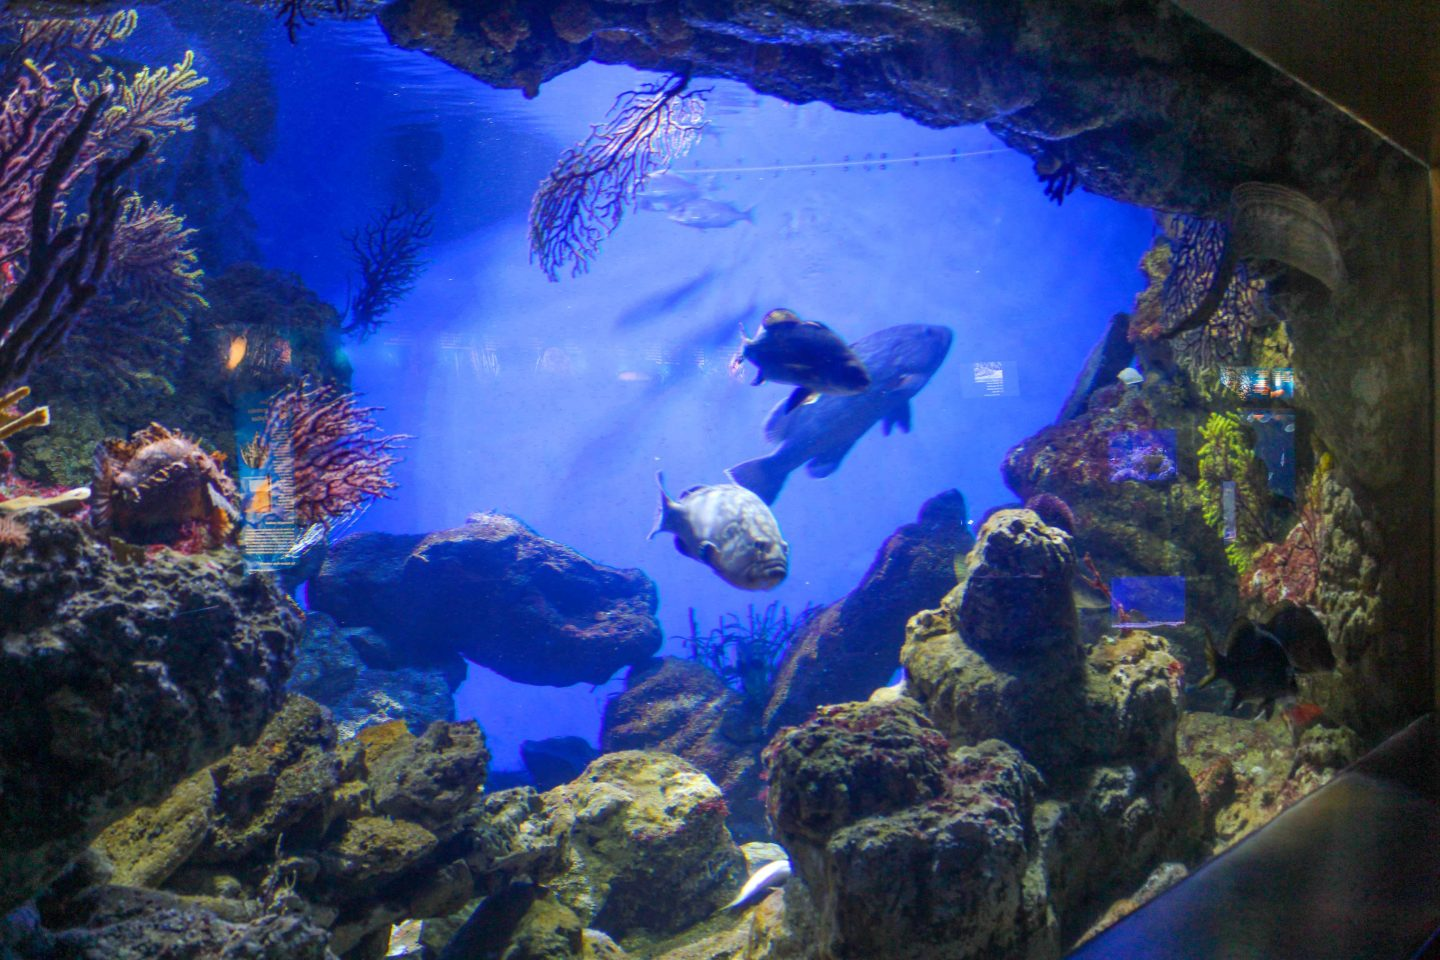 Aquarium Gift Guide. Share the wonders of the aquatic world when you give National Aquarium tickets or memberships, or make a donation in honor of a loved one!